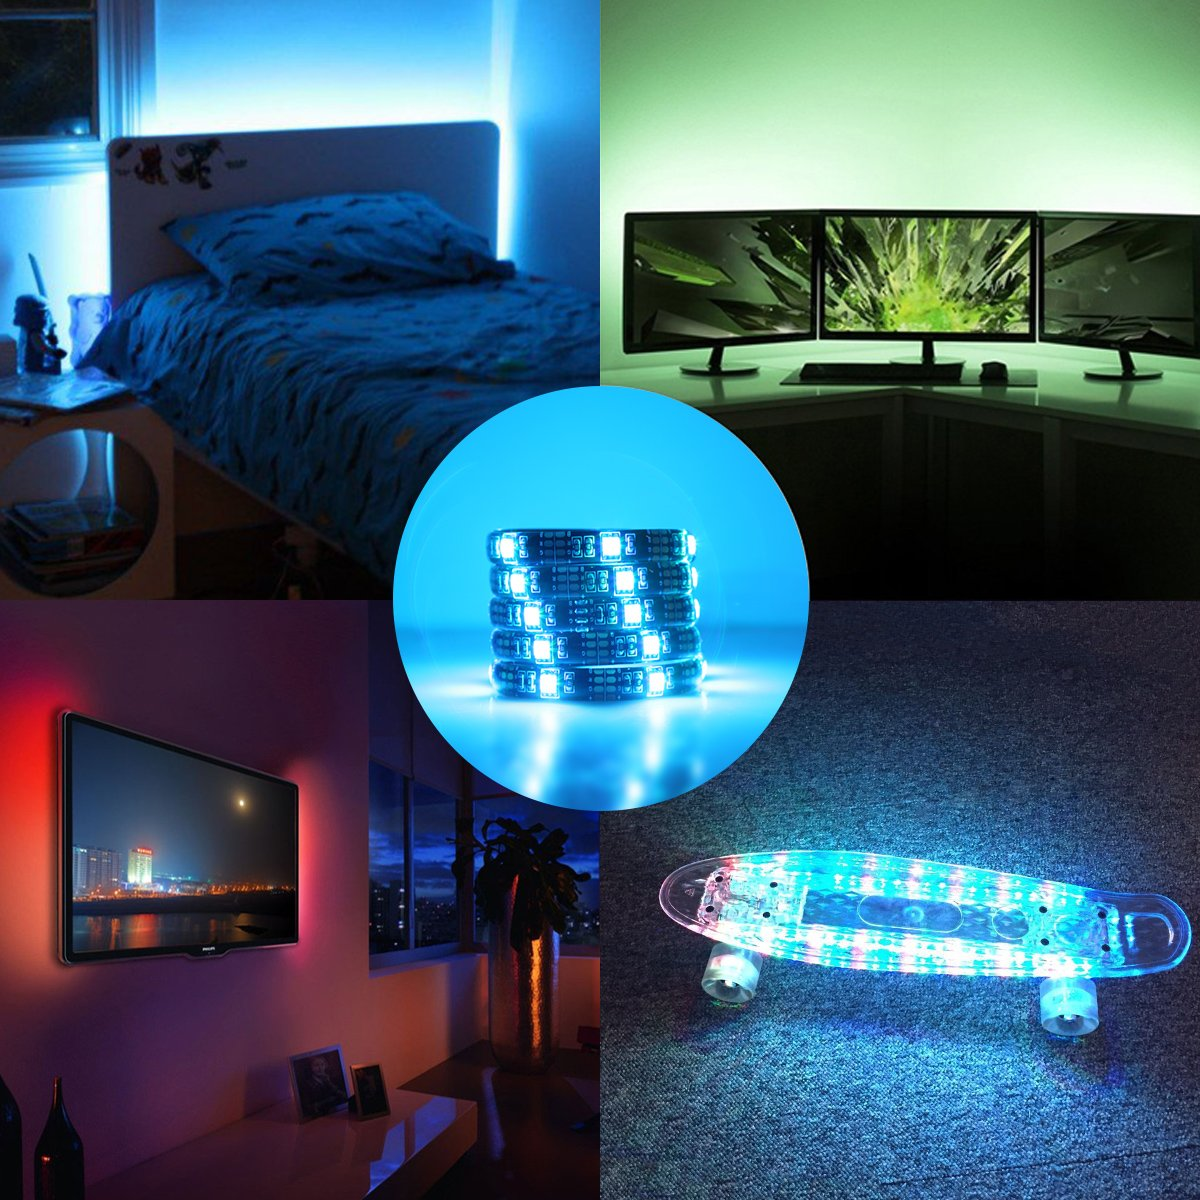 AMIR TV LED Light Strip, 30 LED TV Backlight Strip, USB Bias Monitor Lighting, Changing Color Strip Kit , Accent Light Set , Waterproof Bias Lighting For TV Desktop PC (Wireless remote controller) by AMIR (Image #3)